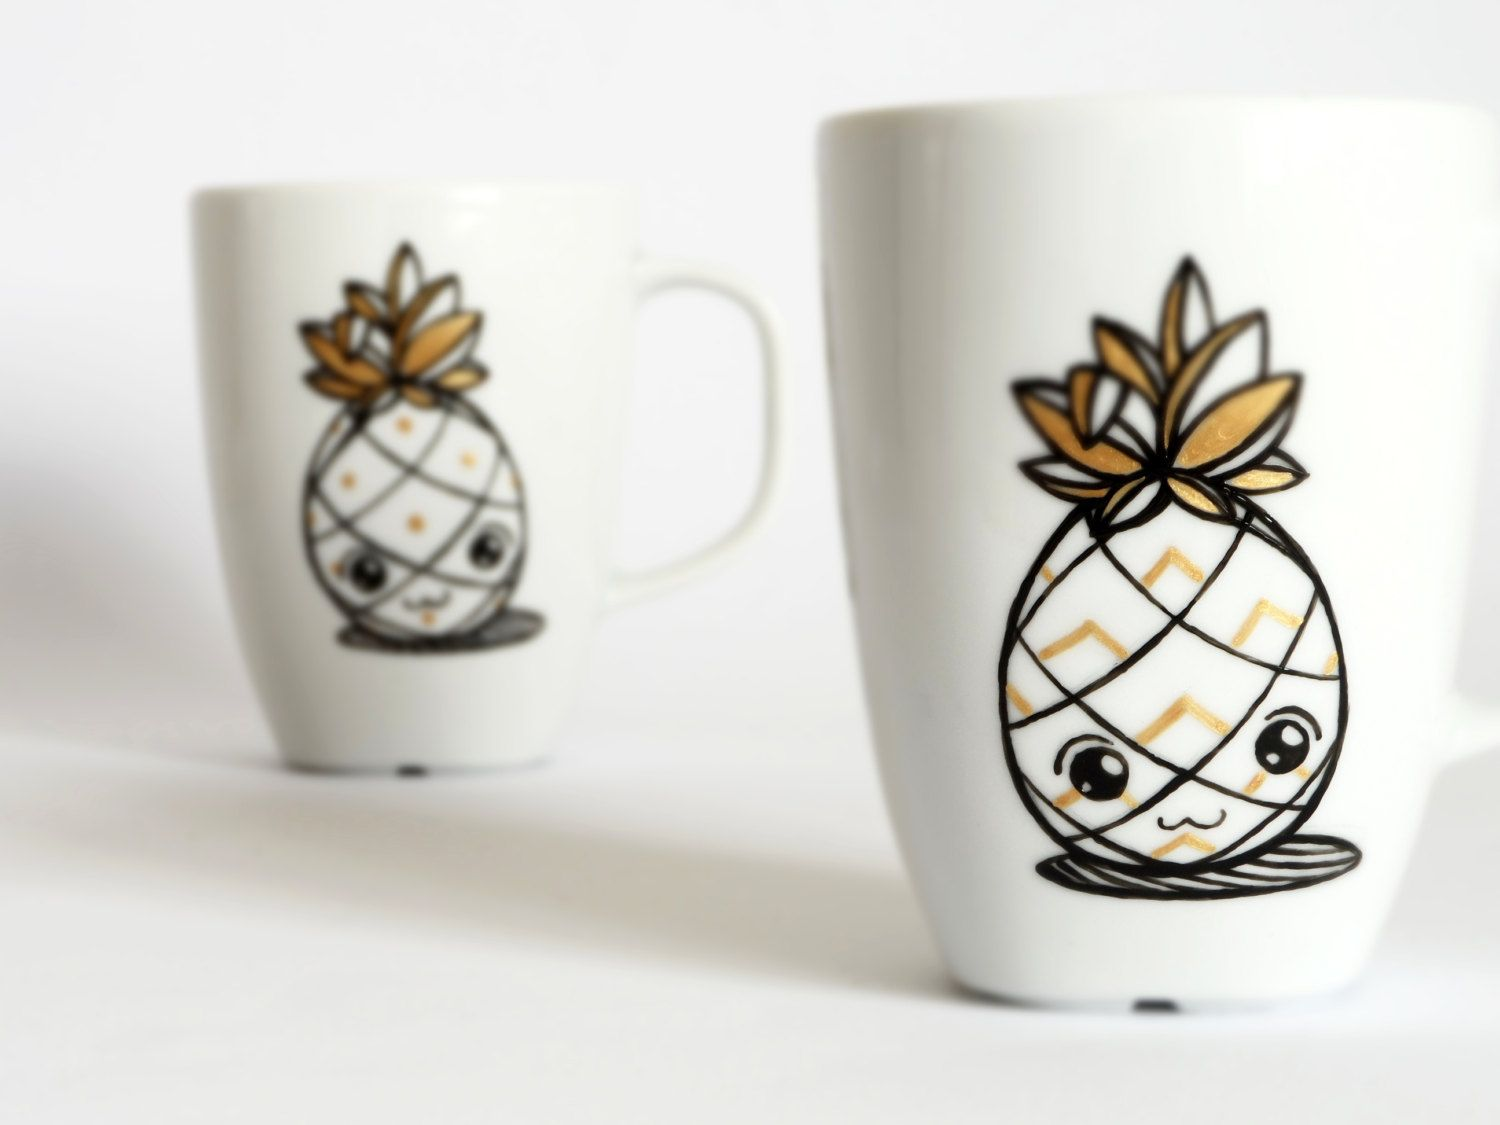 pineapple mug pineapples coffee mug contemporary mug white and  - pineapple mug  pineapples coffee mug  contemporary mug  white and blackminimalist design